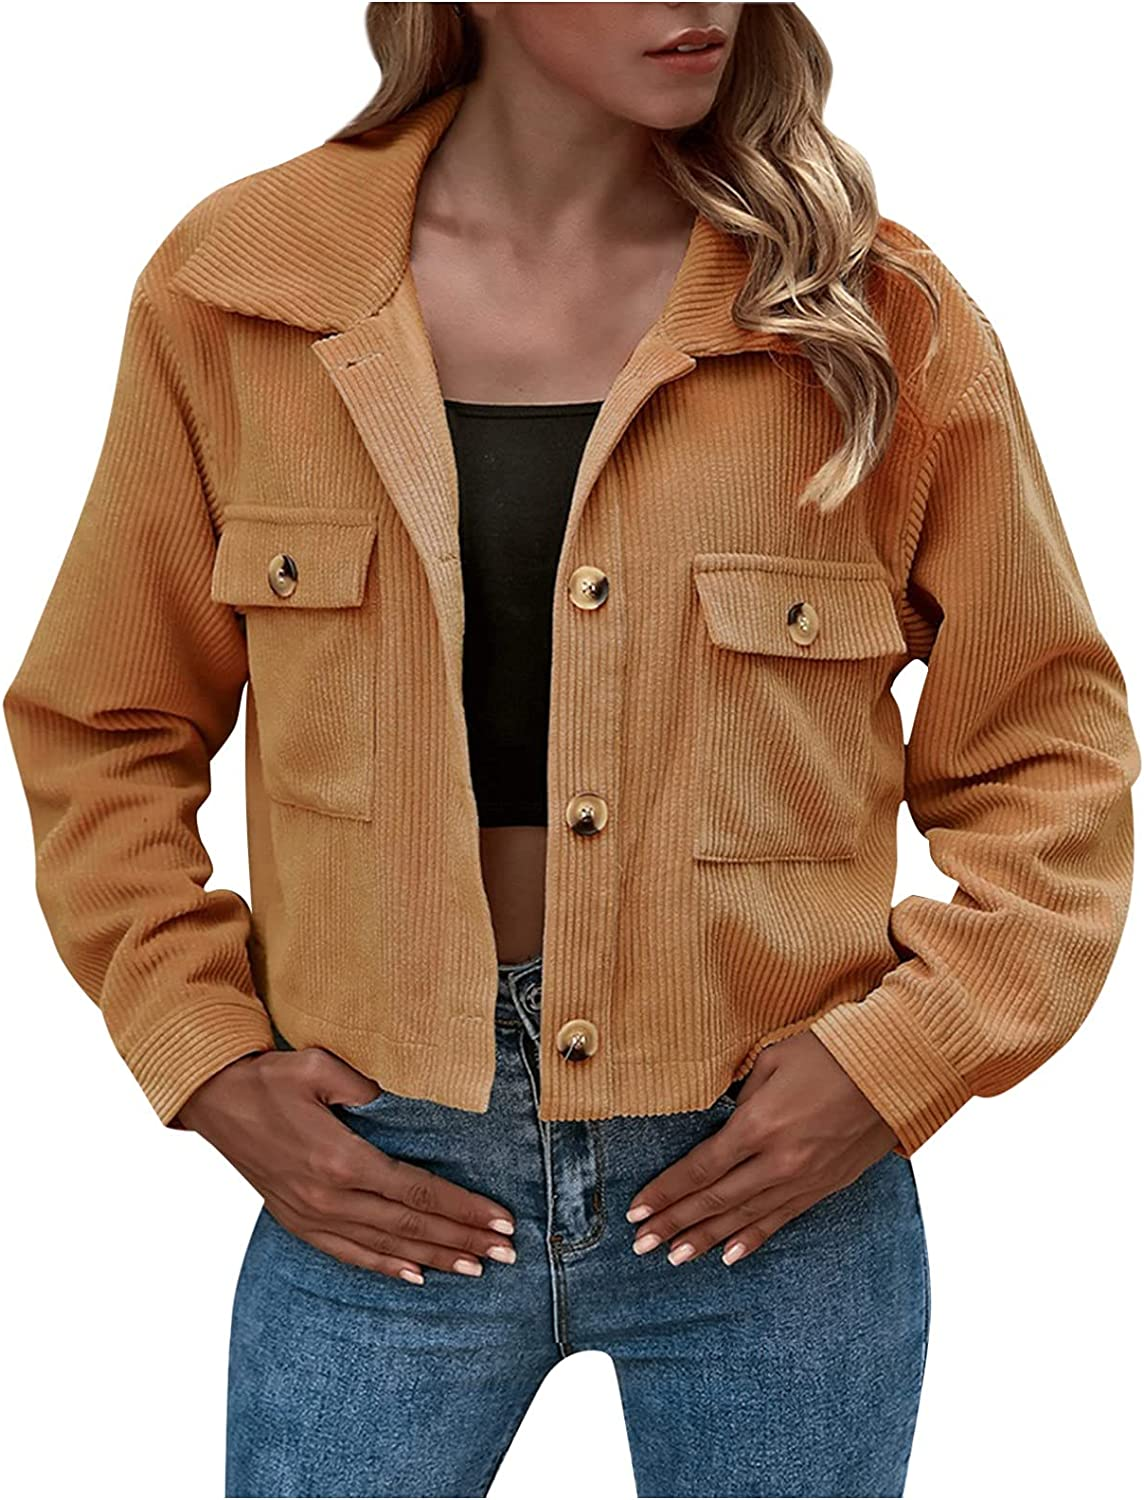 HIKO23 Womens Teen Girls Fall and Winter Coats Long Sleeve Button Down Cropped Jacket Outwear with Pockets